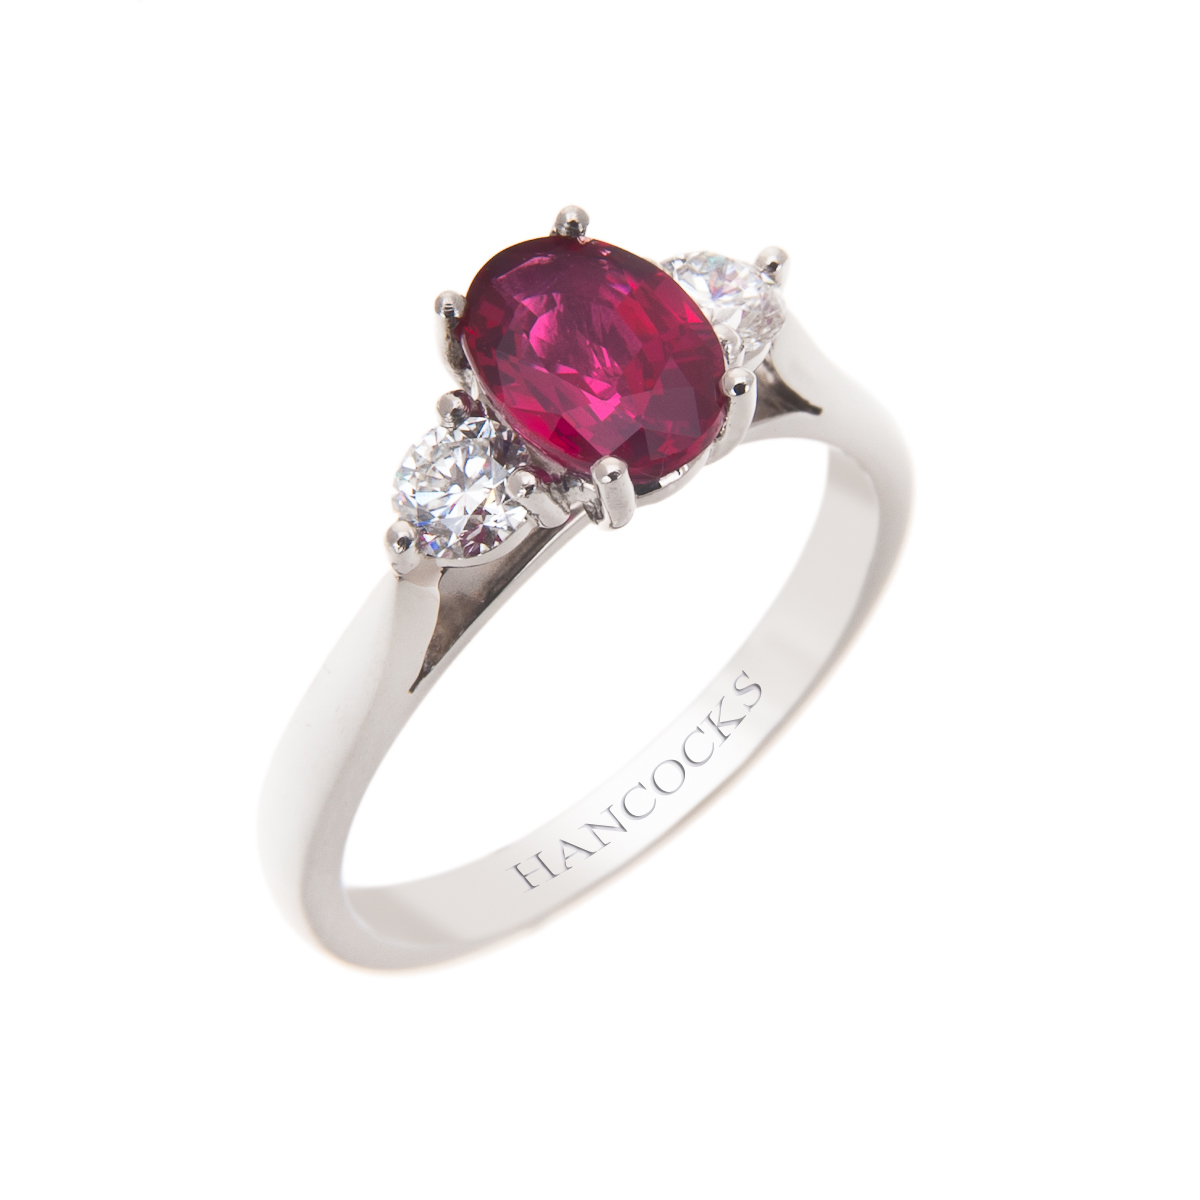 Oval Ruby And Diamond 3 Stone Ring Hancocks Jewellers